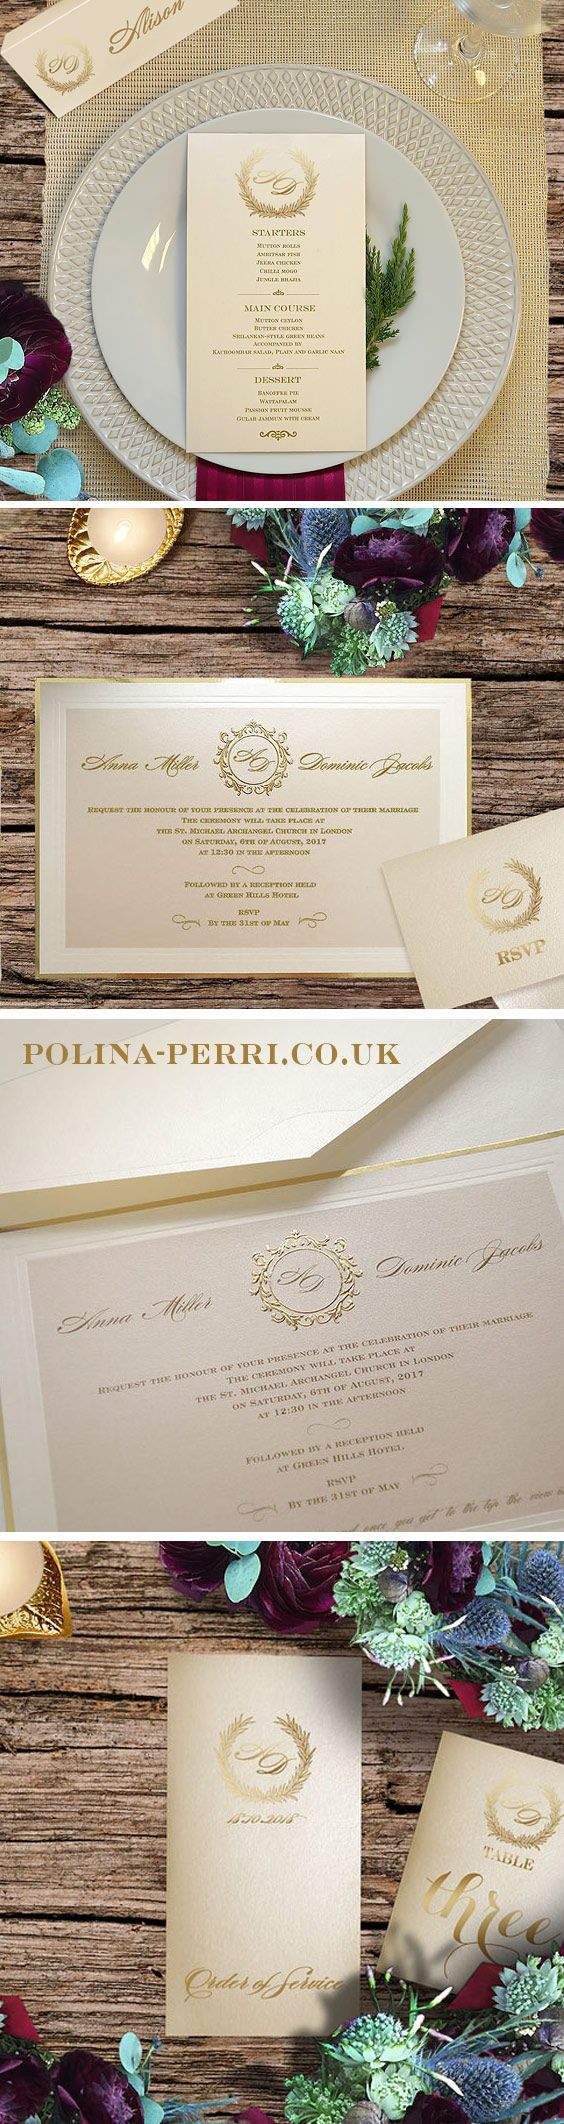 Ivory u0026 Gold wedding invitations fascinate with